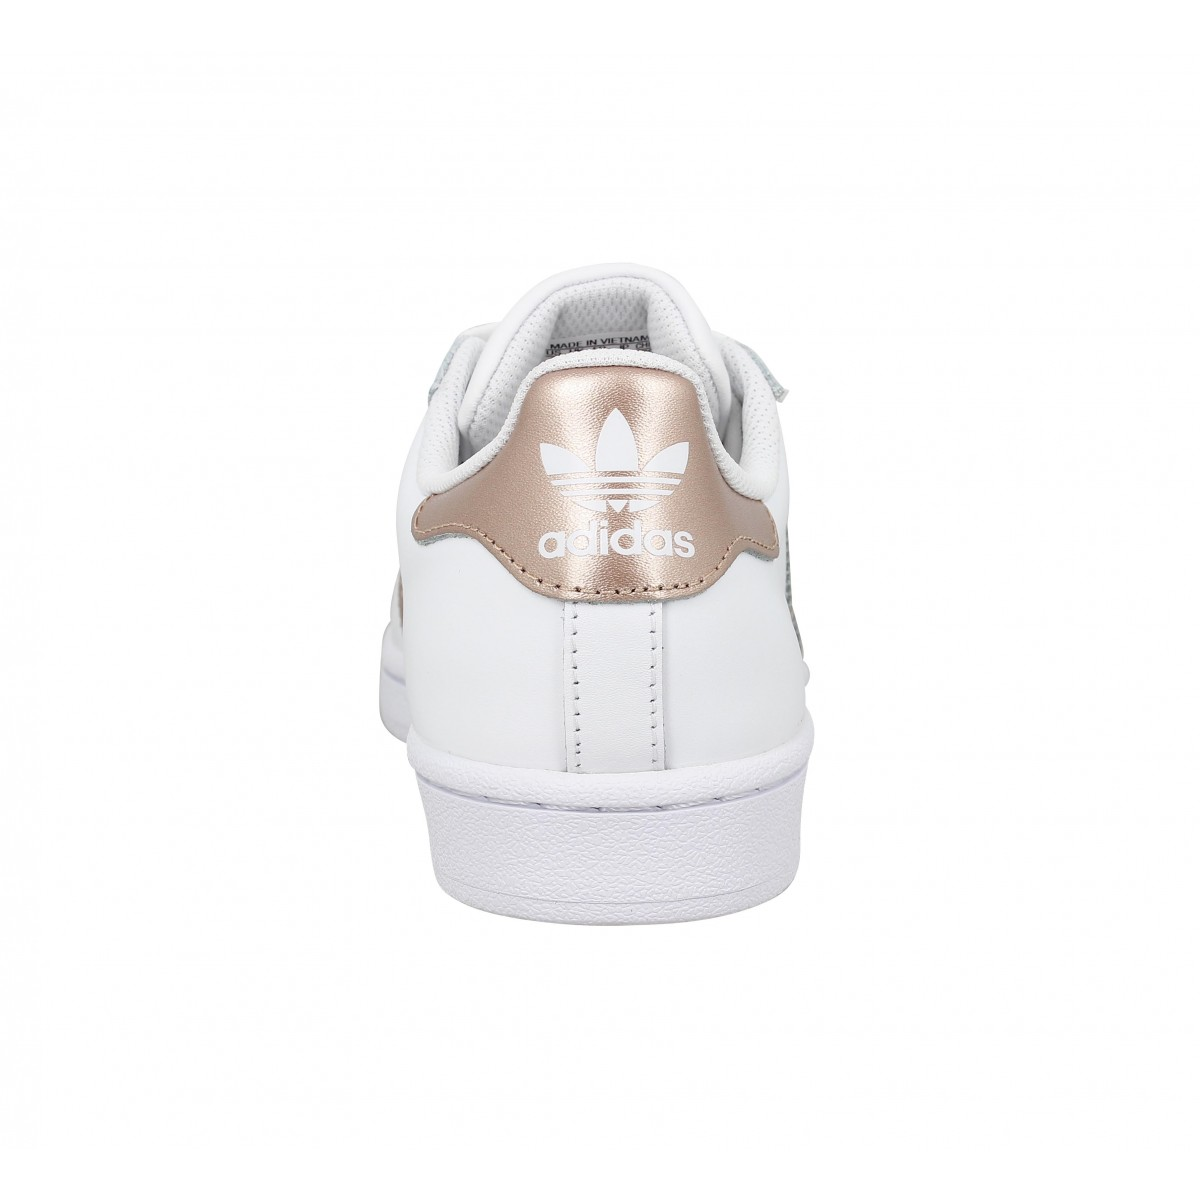 adidas grand court femme rose gold